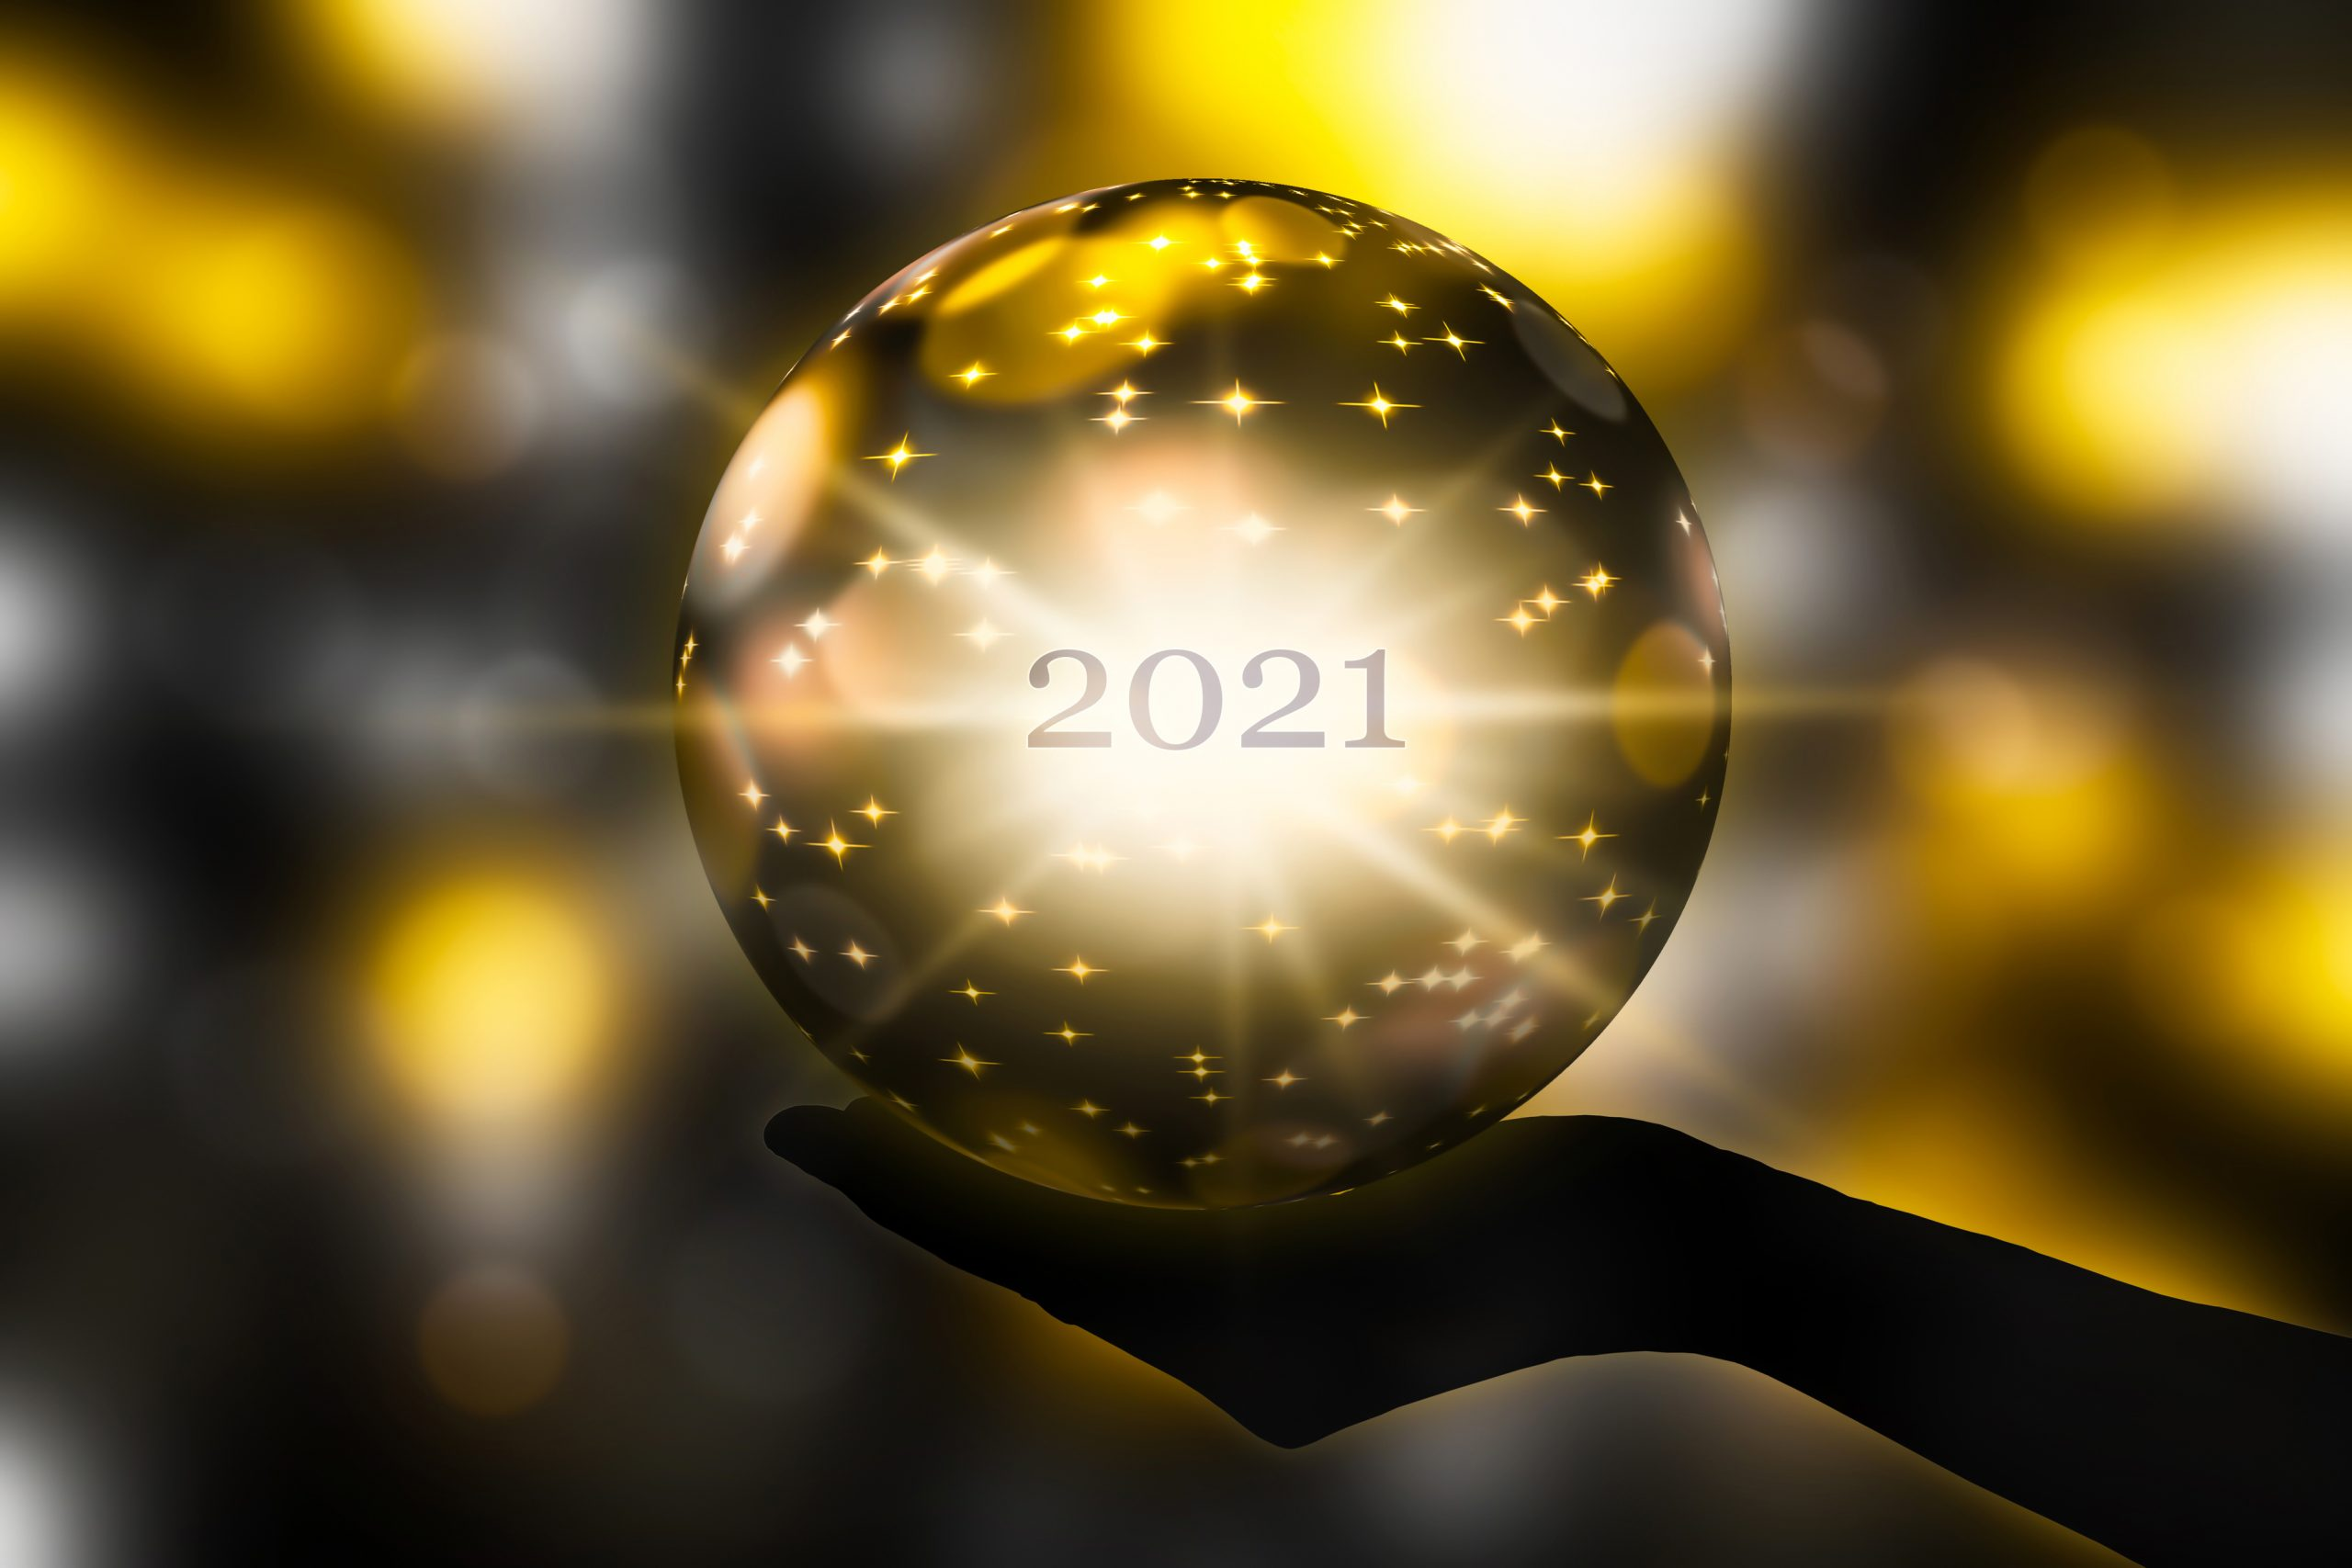 Blast clients share their holiday + 2021 predictions across verticals